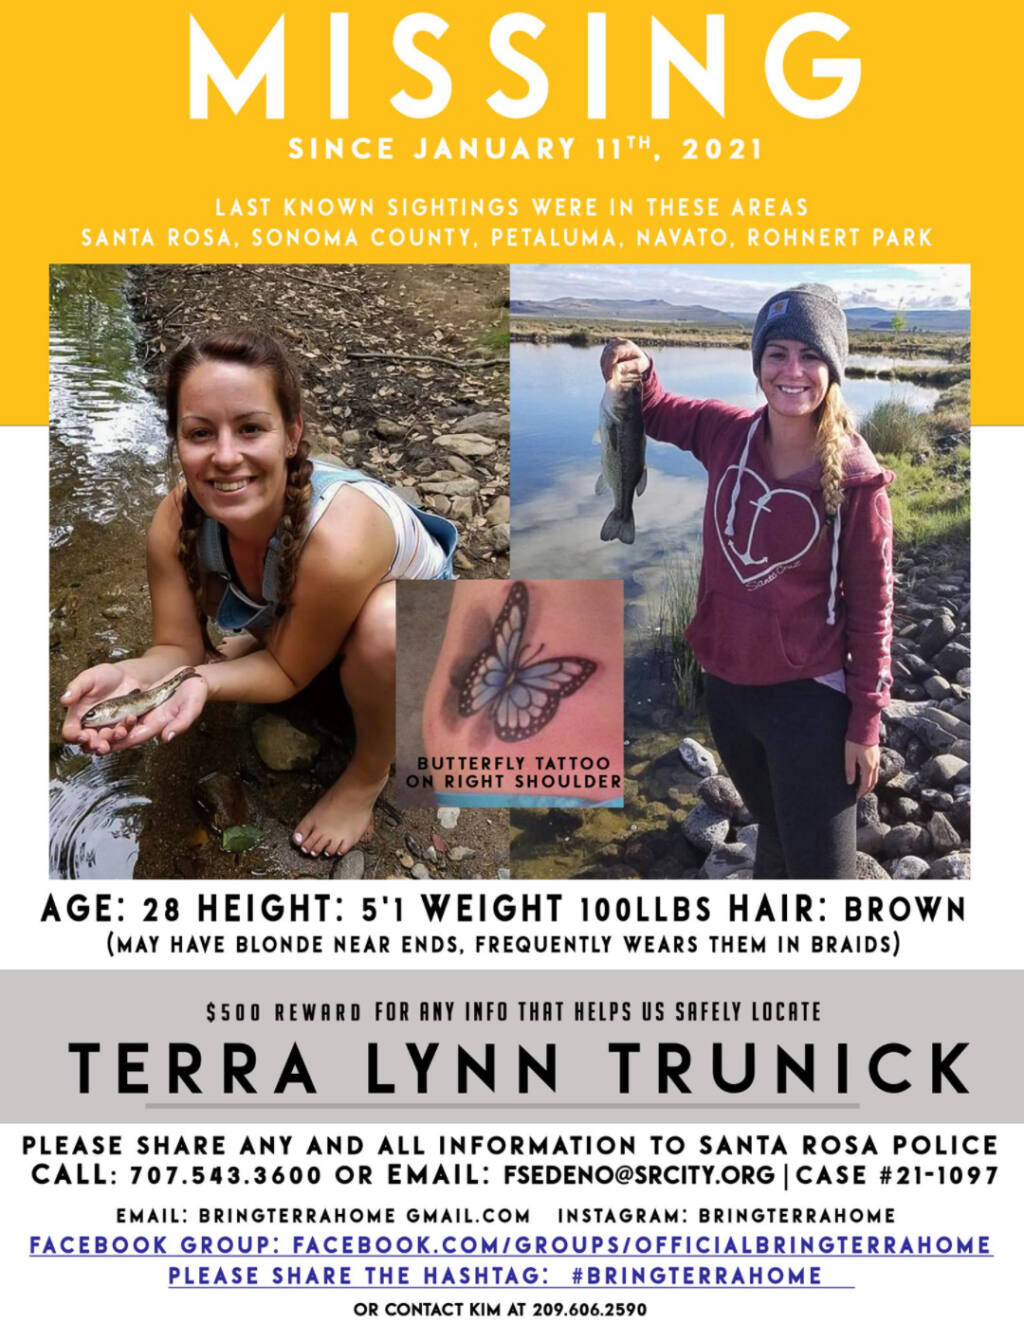 Terra Trunick, 28, is a Santa Rosa resident who has been missing for more than a month. (Official Bring Terra Home / Facebook)